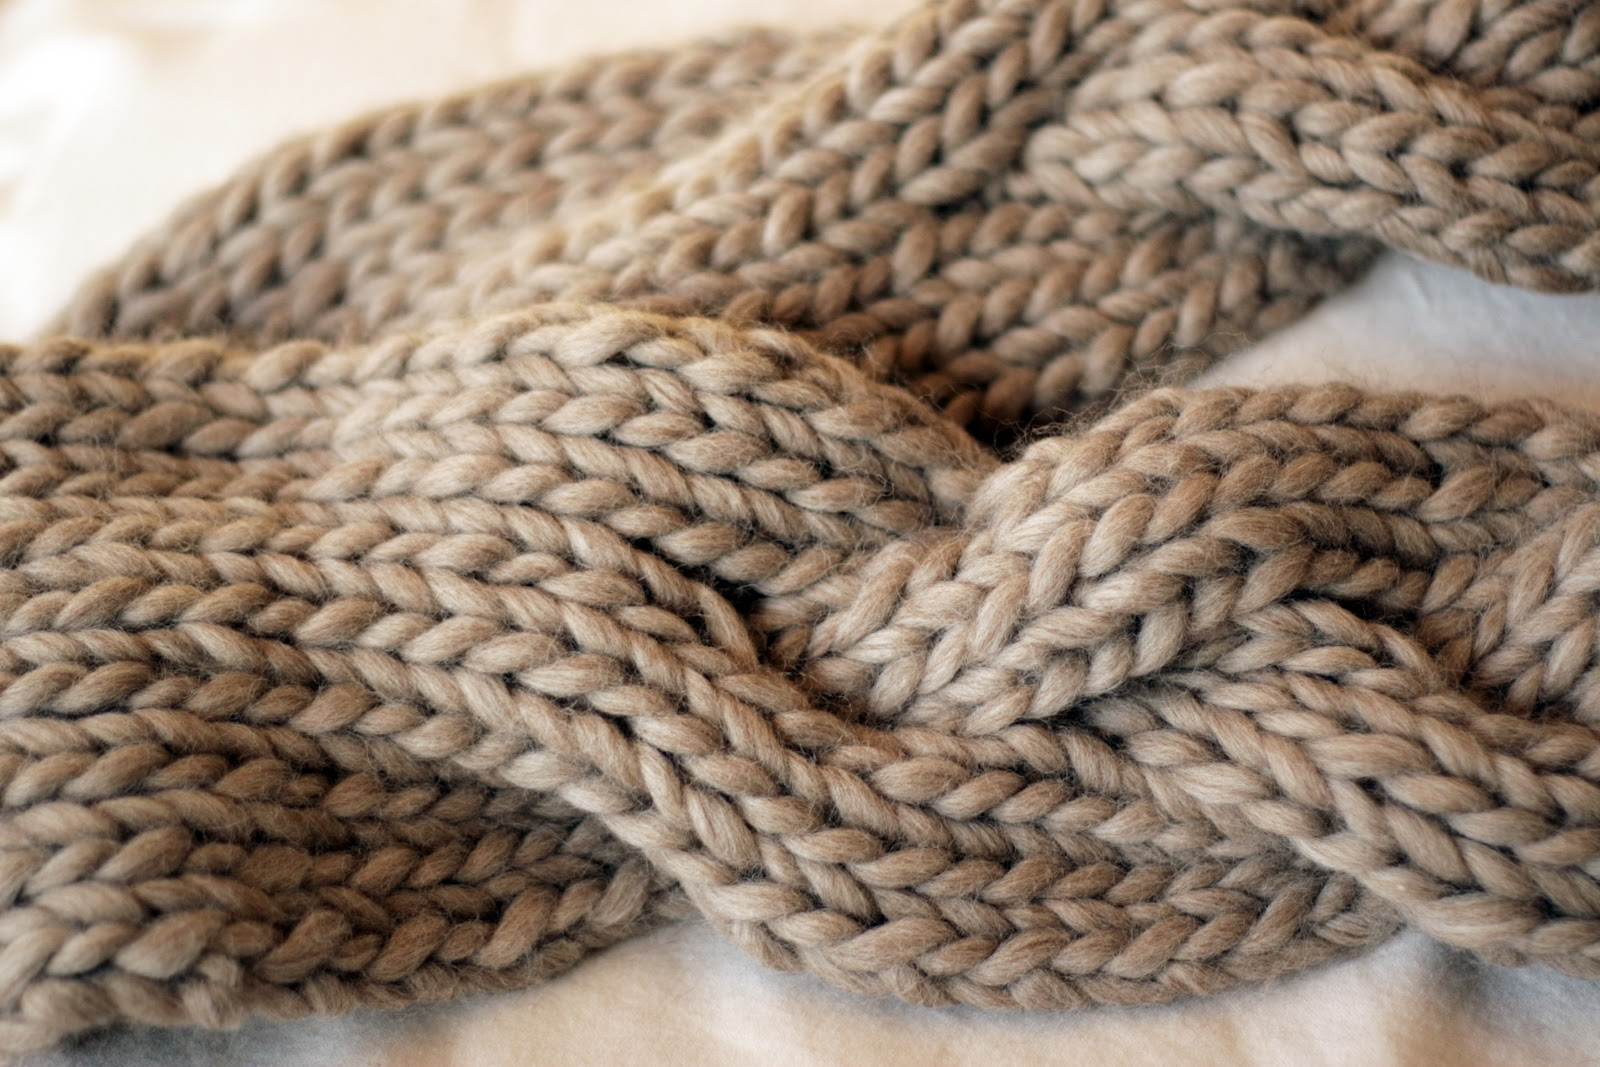 KATE PRESTON HANDKNITS /BLOG: Kates Braided Cable Cowl